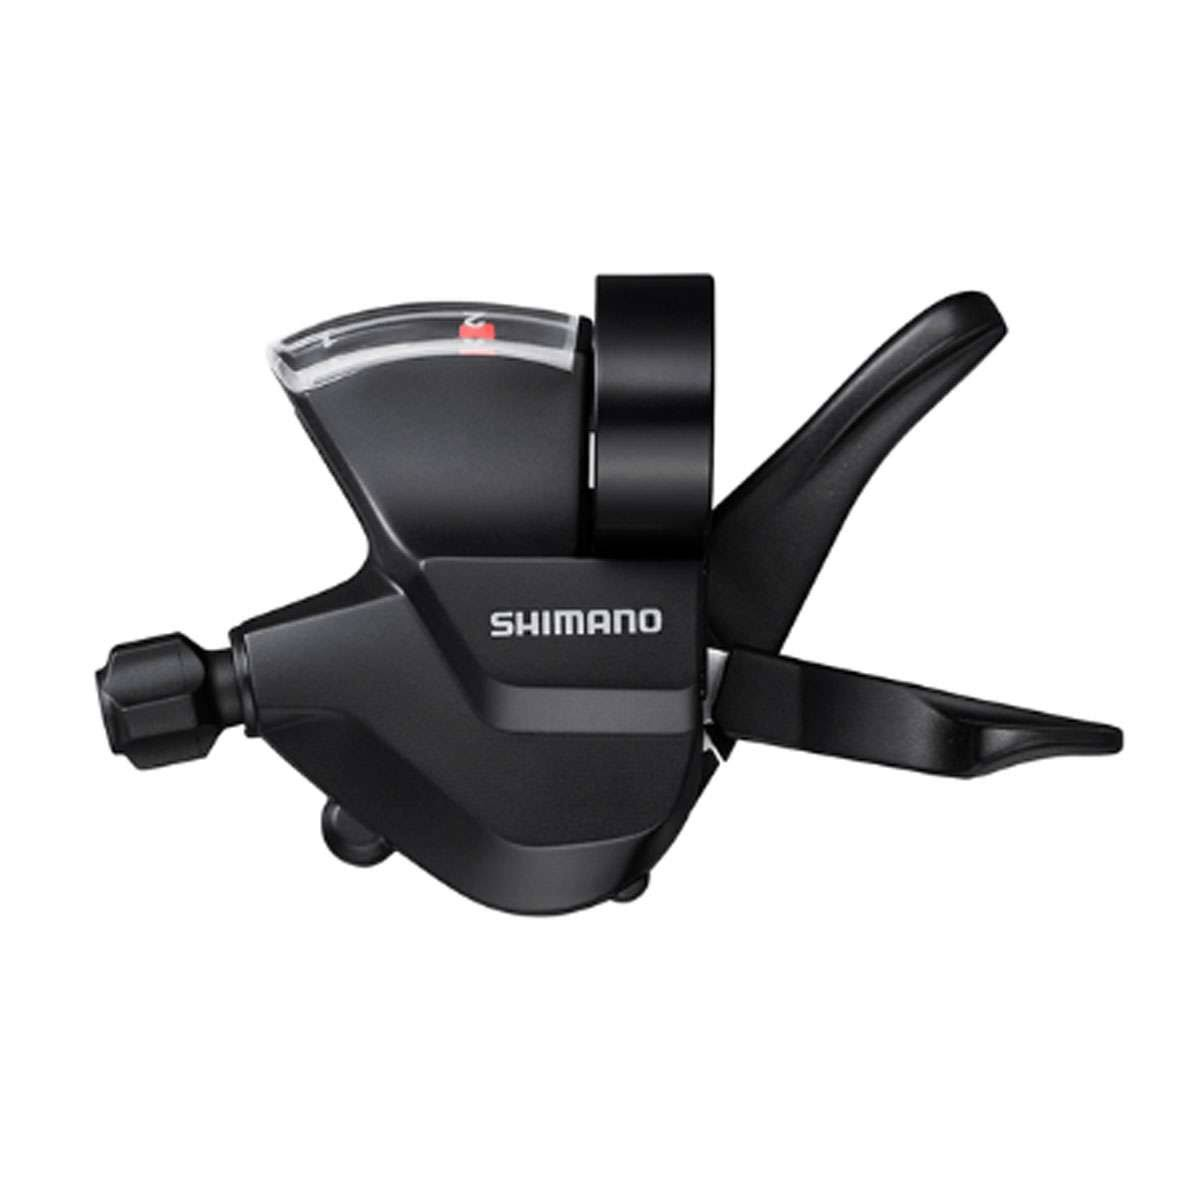 Shimano Altus M315 3 Speed Front Shifter Black